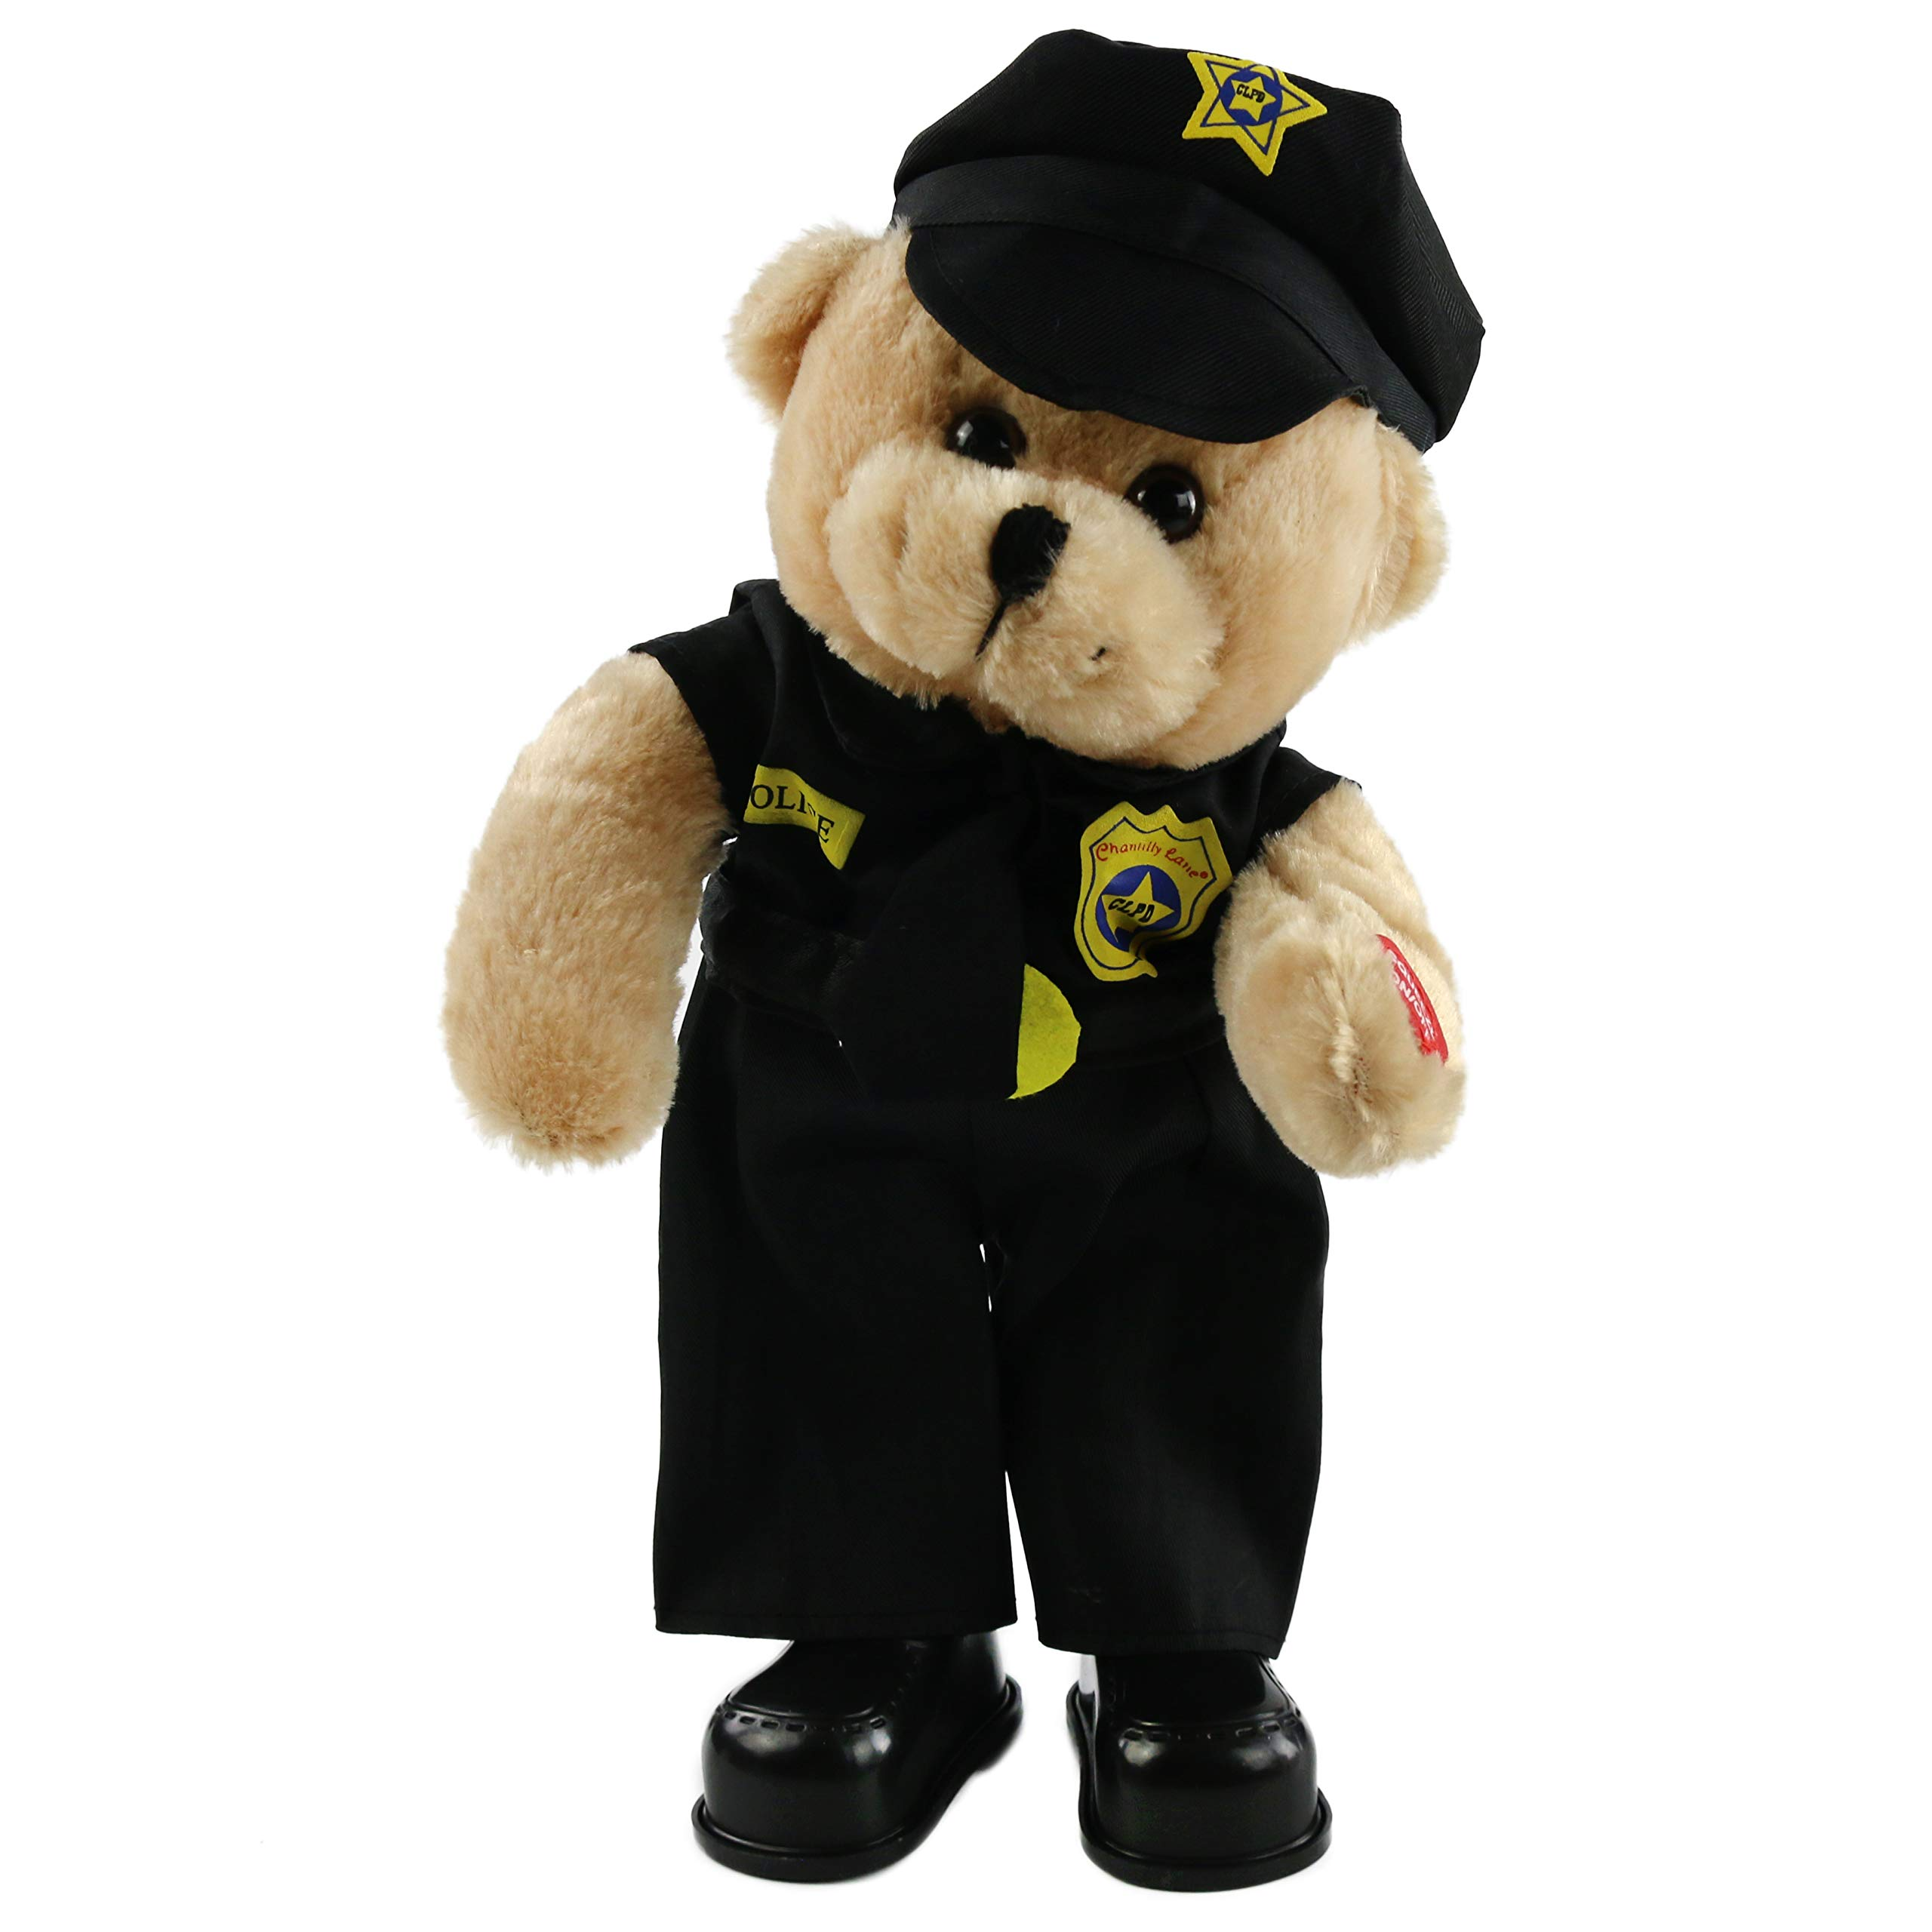 Houwsbaby Singing Police Justicial Teddy Bear Dancing Stuffed Animal in Uniform Electronic Plush Toy Interactive Animated Gift for Boys and Girls, Black, 14 inches by Houwsbaby